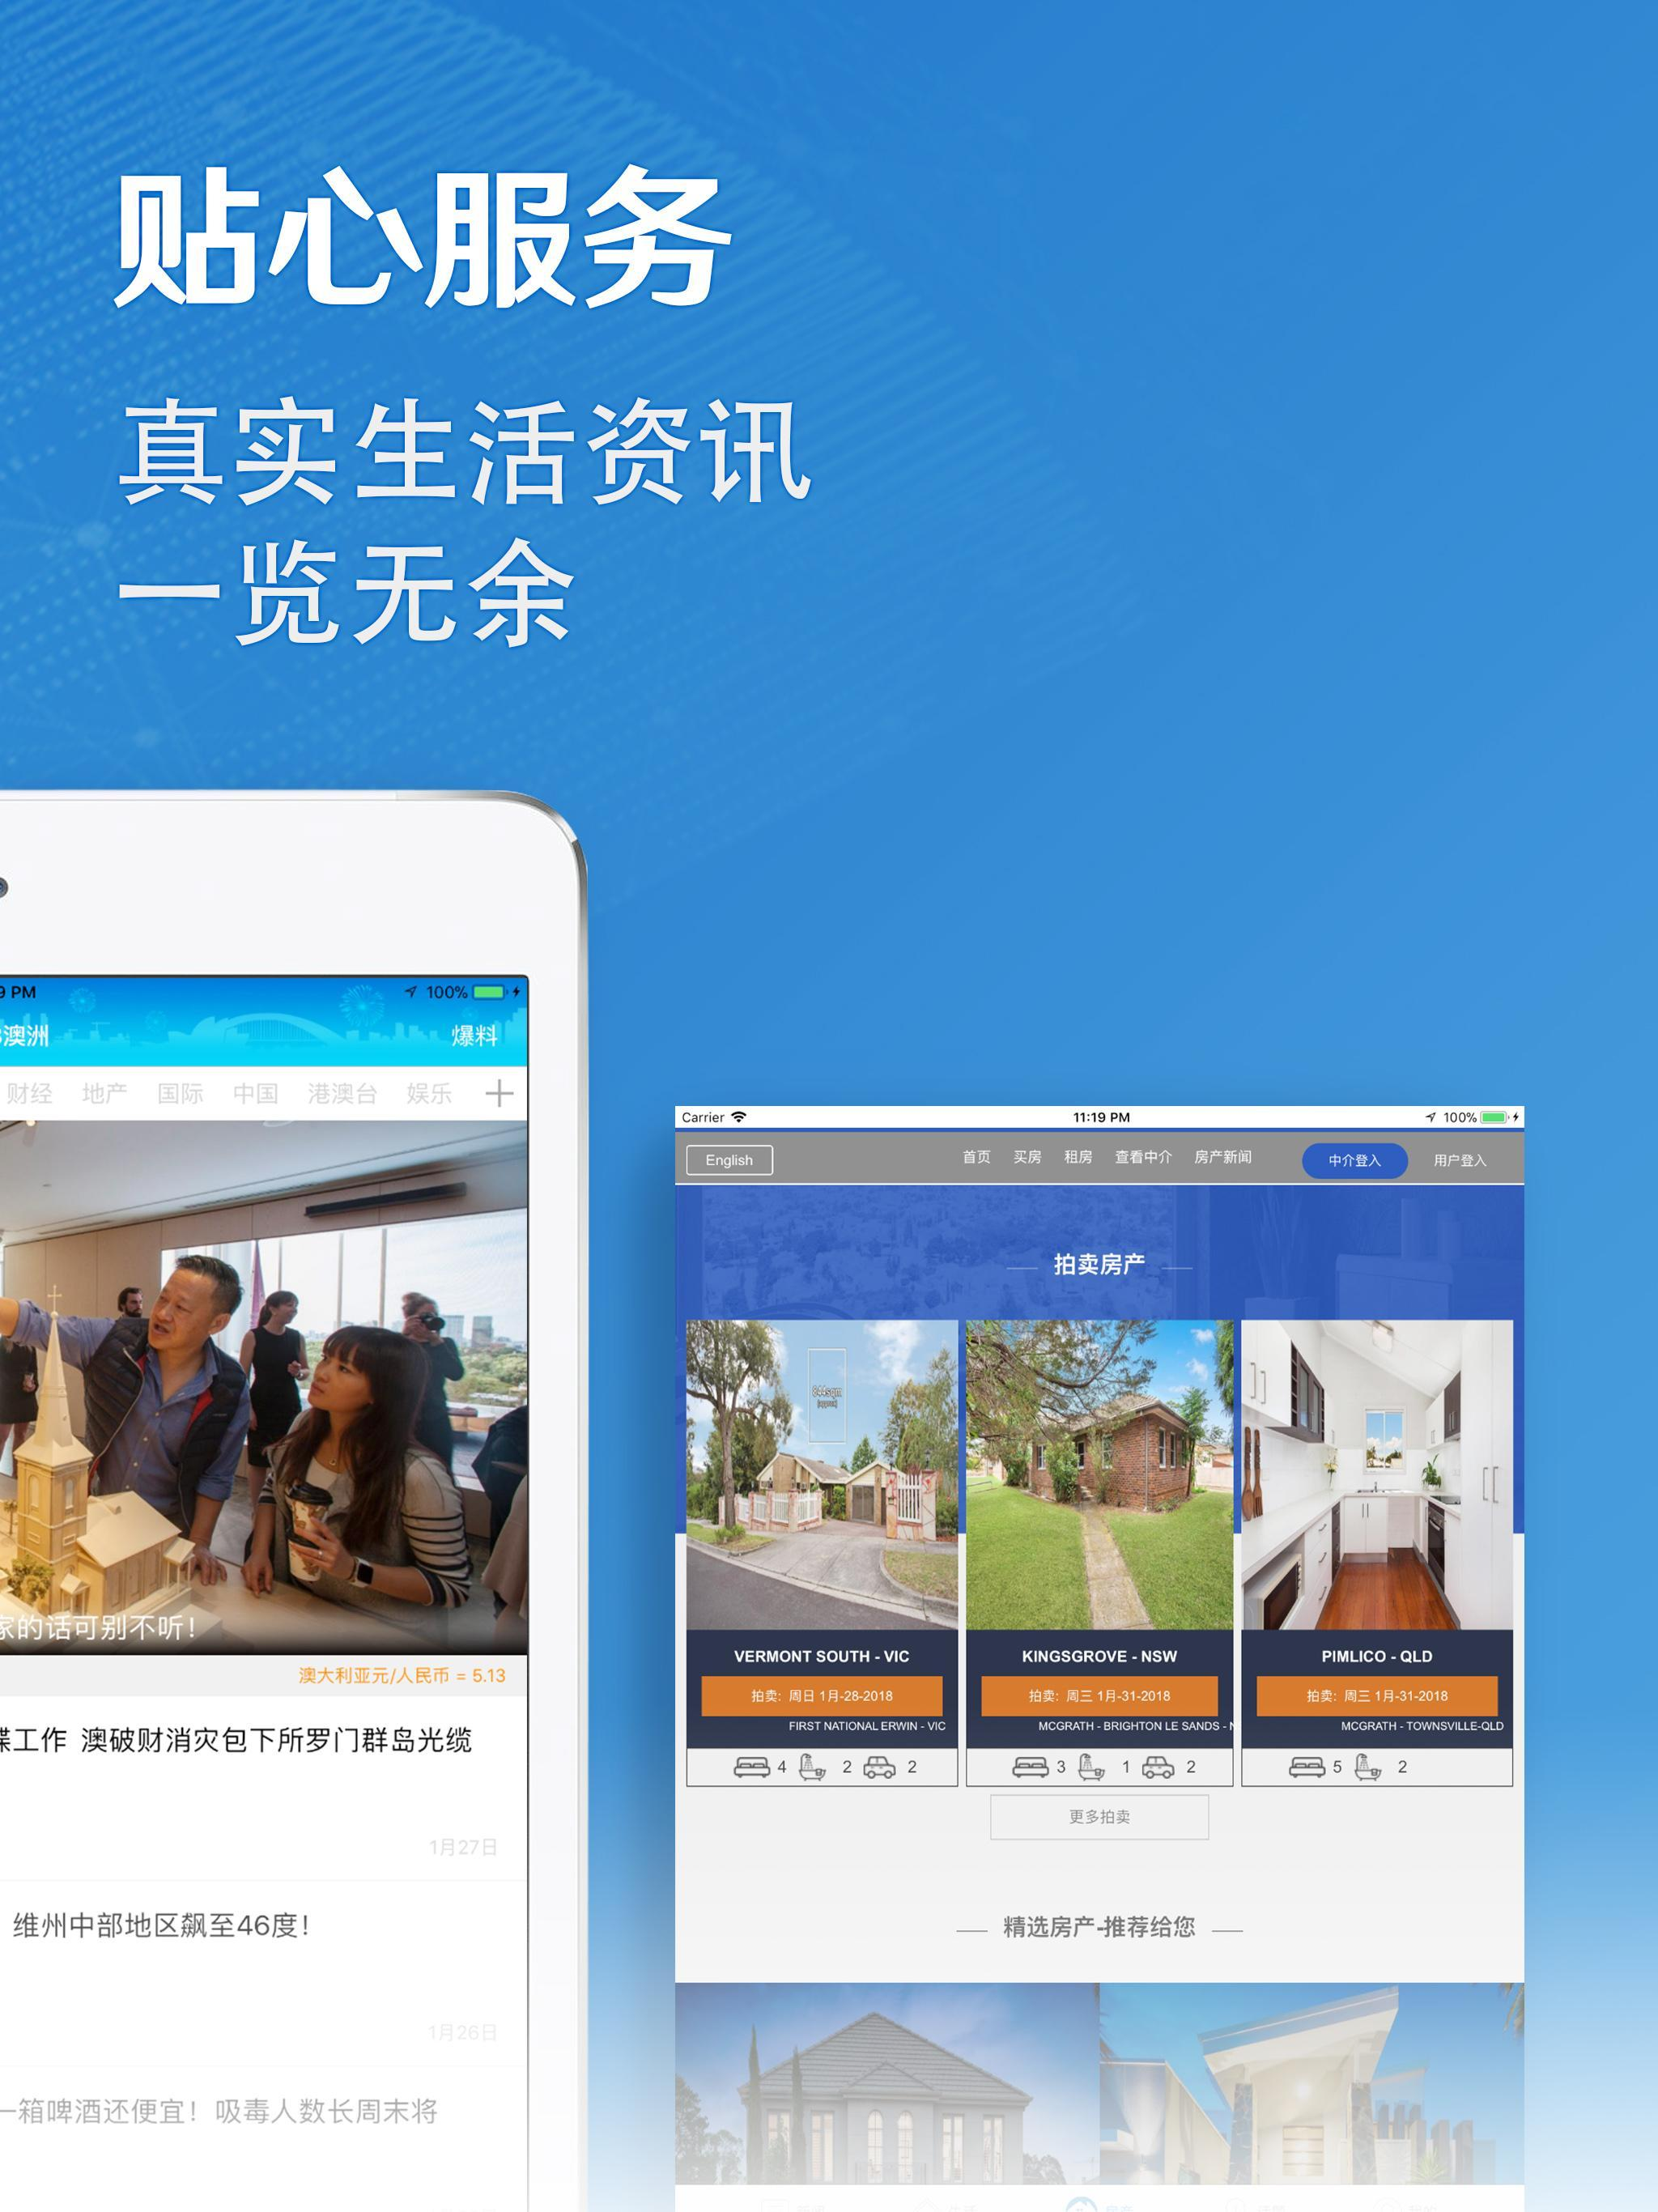 1688澳洲—Daily APP for Chinese Australian for Android - APK